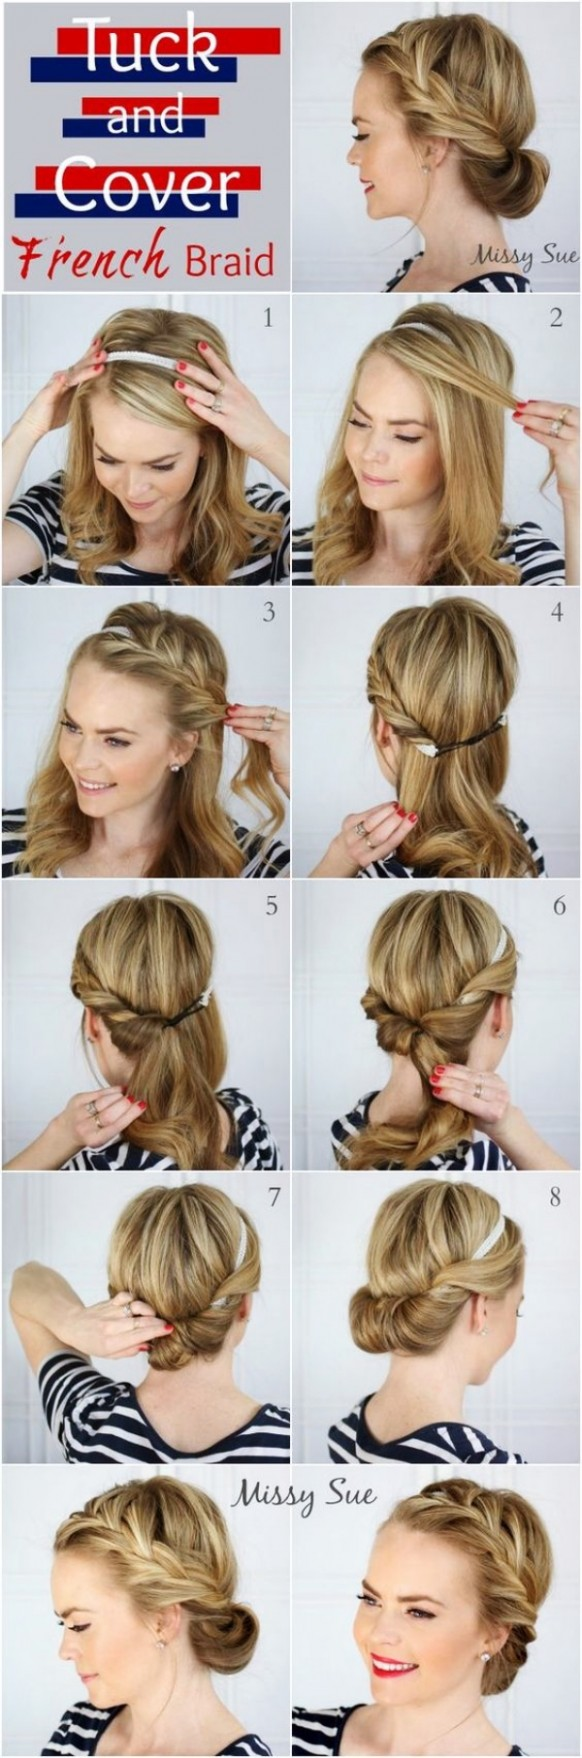 12 Inspiration Hairstyle Short Hair Girl Easy Cute And Easy Hairstyles For Short Hair